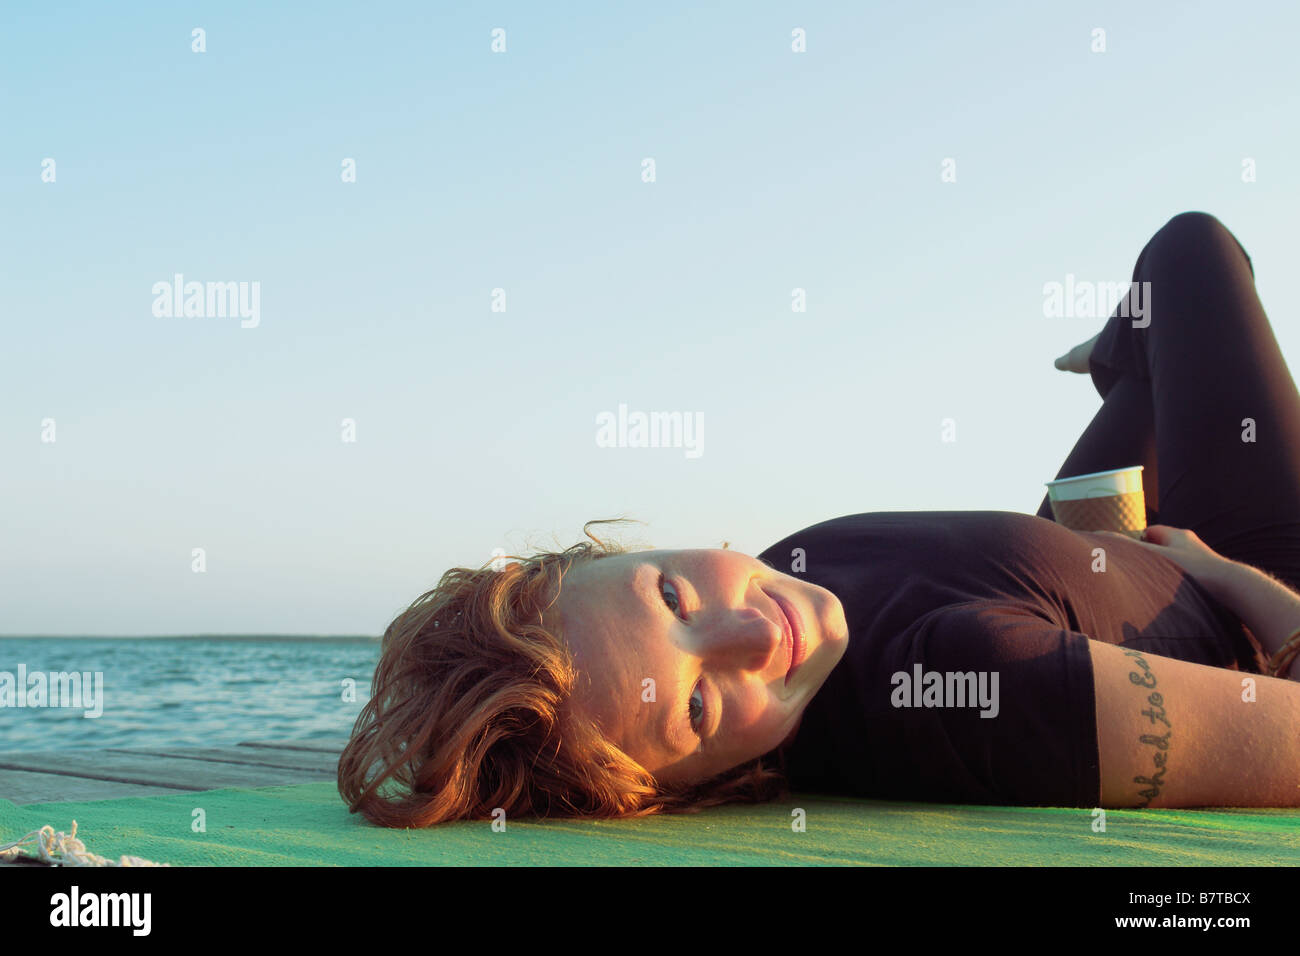 Woman lying on dock by lake, Clear Lake, Riding Mountain National Park, Manitoba, Canada - Stock Image